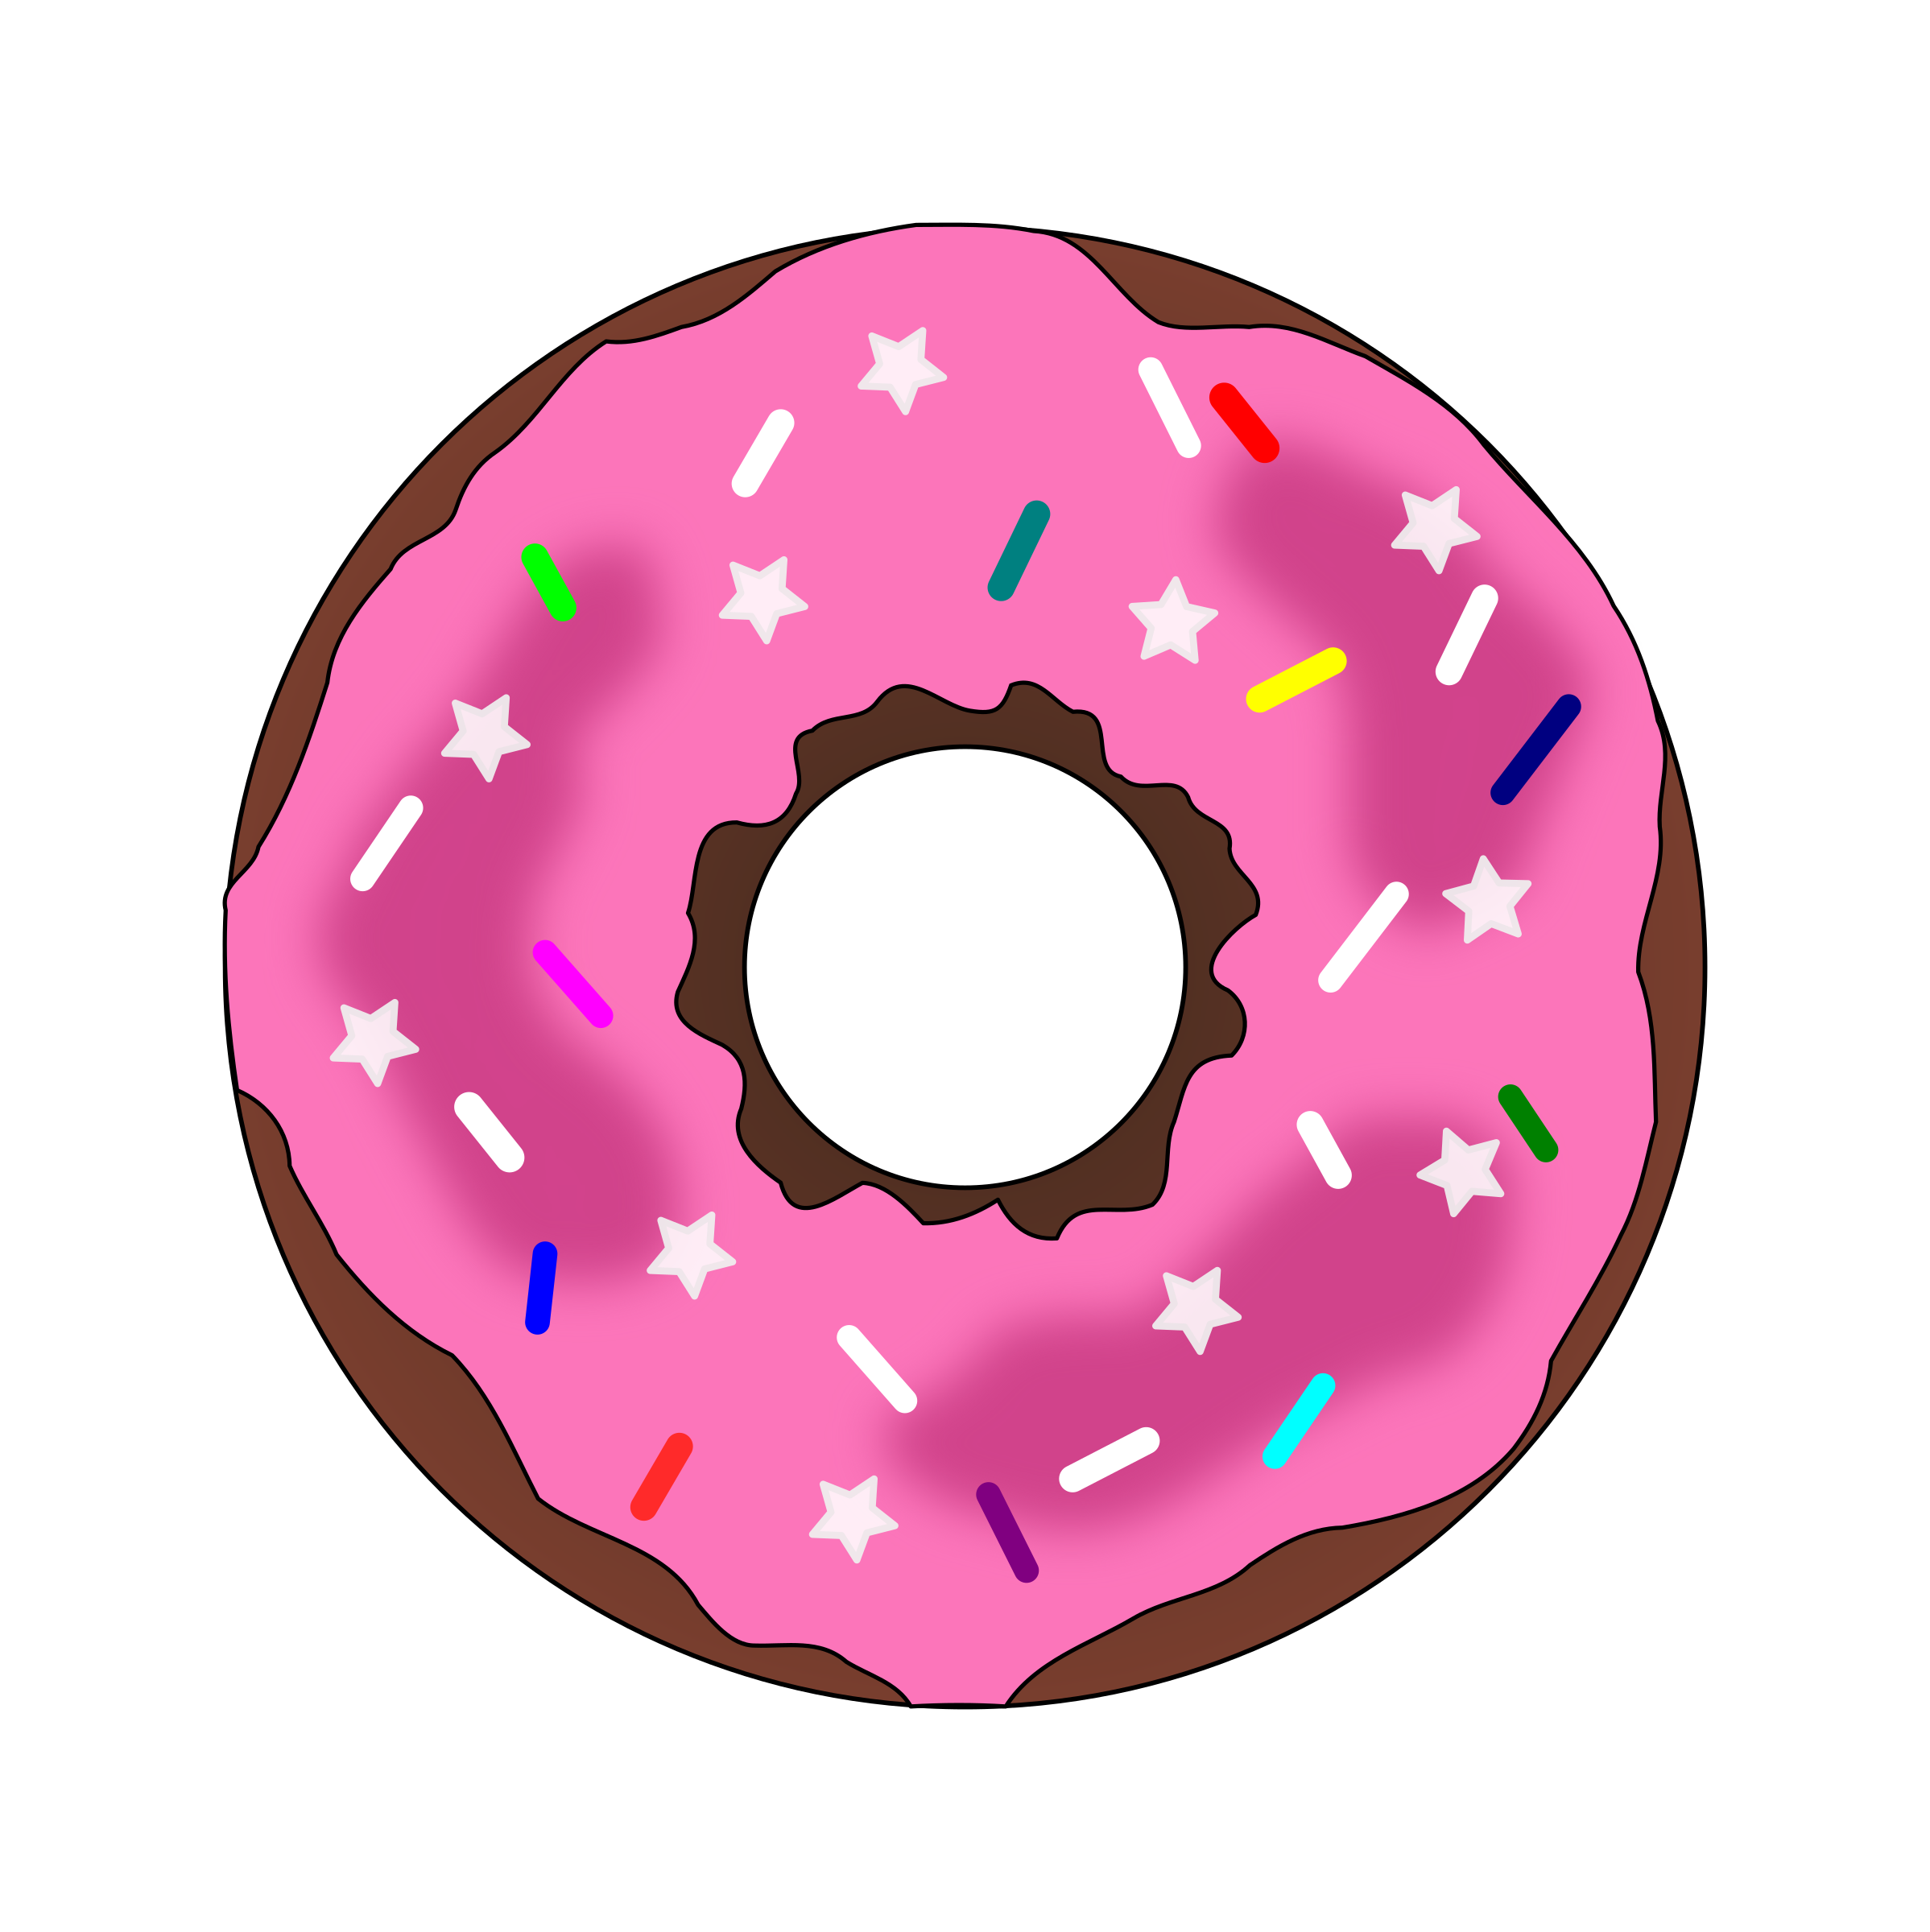 clip transparent download Stars and sprinkles icons. Vector donut pdf